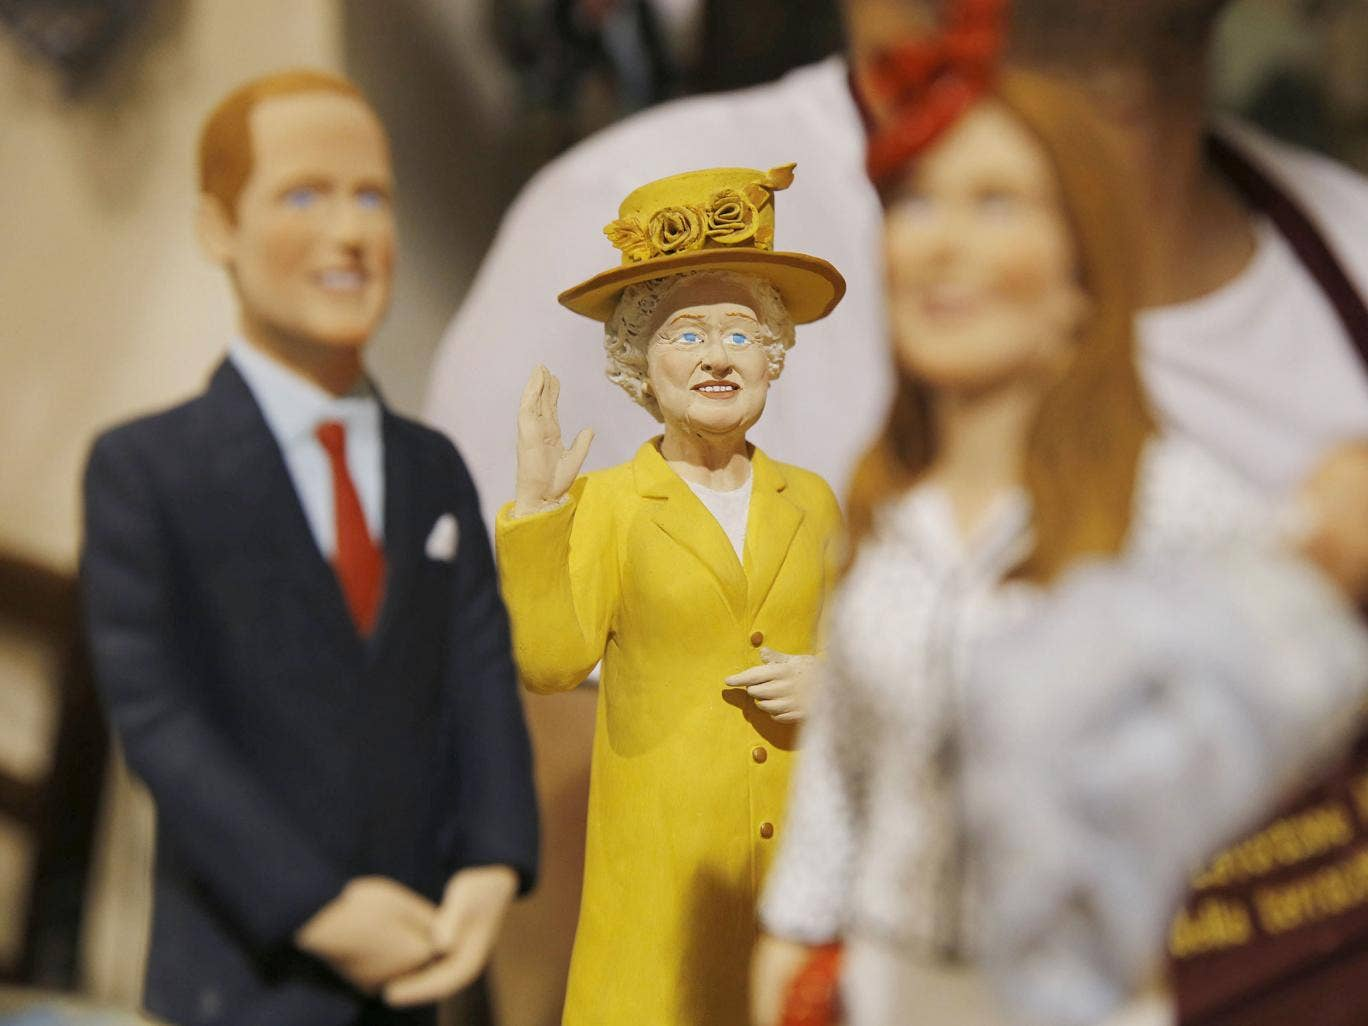 The Duke of Cambridge is more popular than the Queen